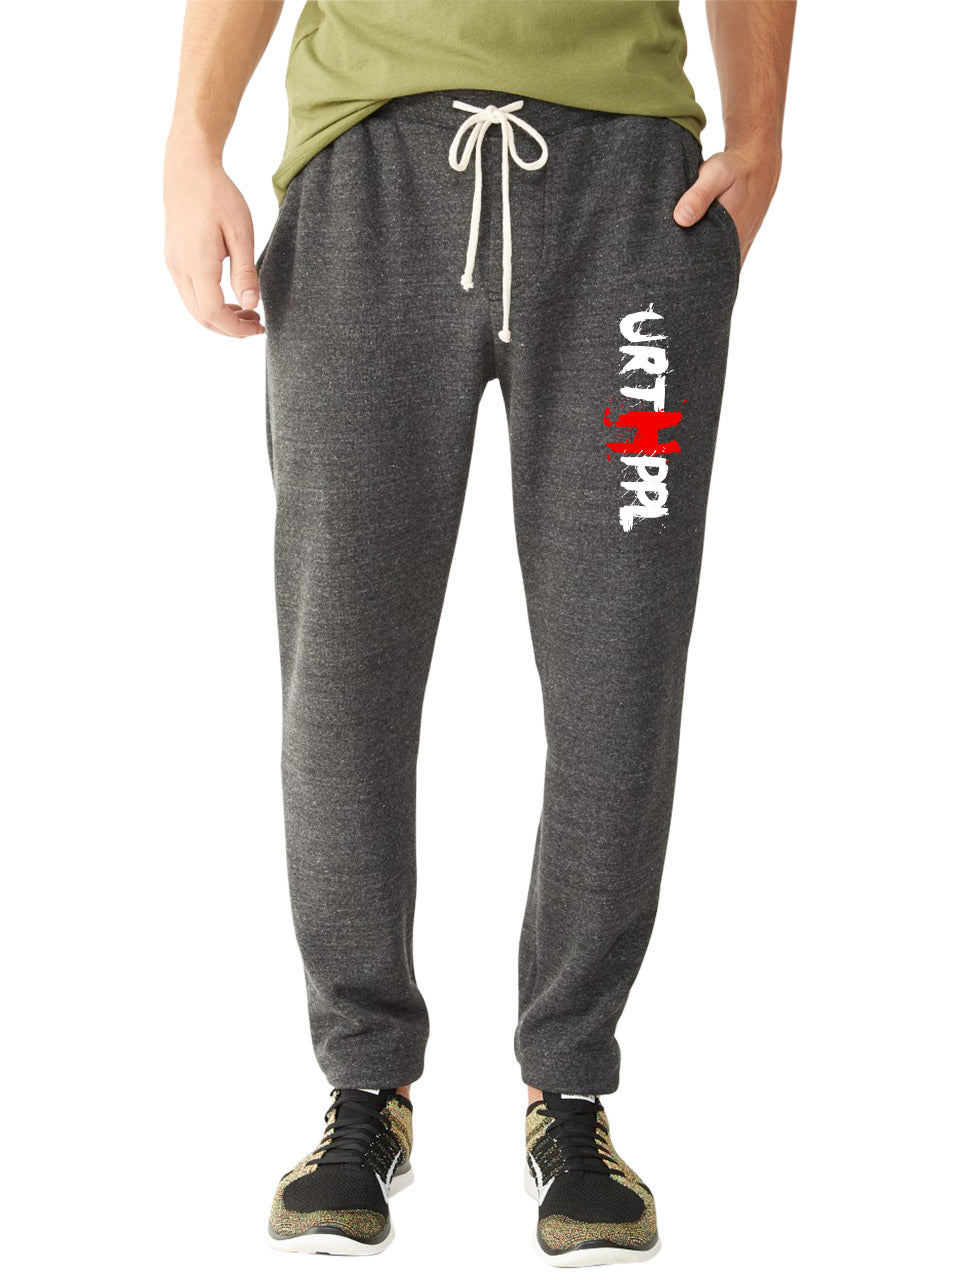 URTHPPL Logo Men's Eco-Fleece Joggers-Charcoal Black Triblend